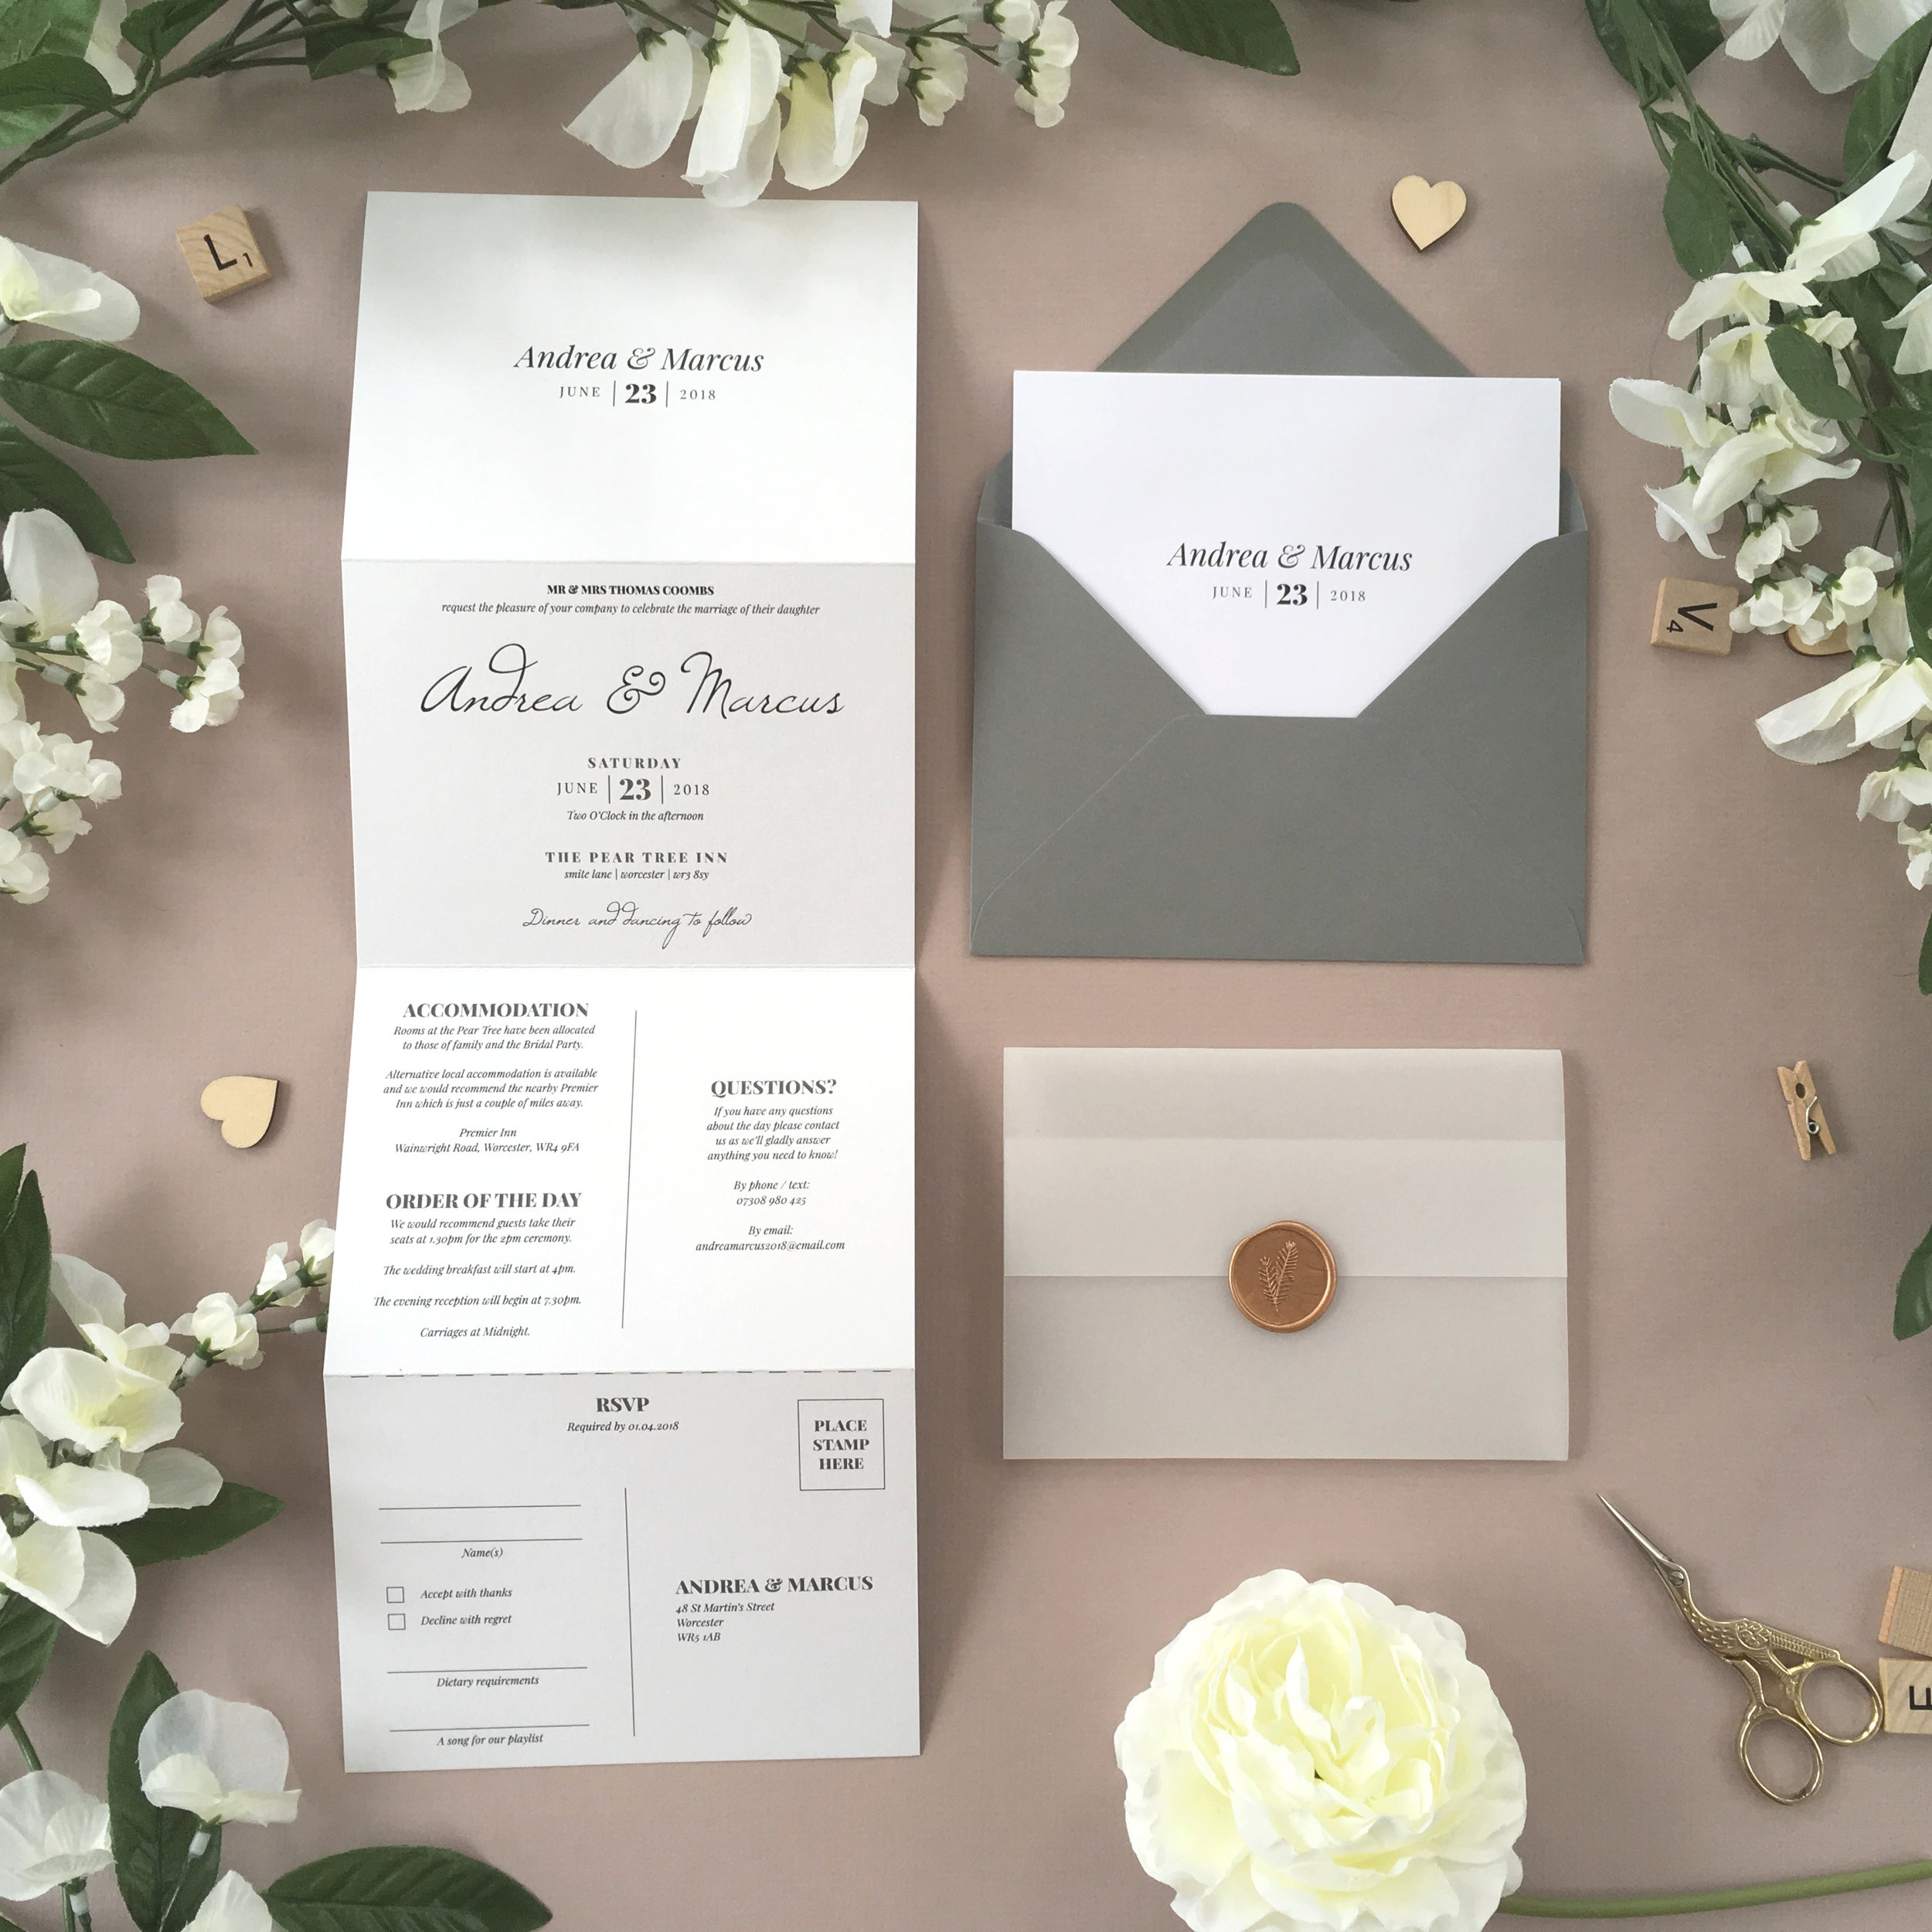 Knightsbridge - Shown in an elegant greyscale scheme, this classically-styled concertina wedding invitation comes from our traditional Knightsbridge collection.Our concertina invitations are a great all-in-one solution, with a detachable RSVP at the bottom of the invitation - all guests need to do is fill in their details, put a stamp in the corner and post!Concertina invitations can be provided on an as-is basis, or can be provided bound with a vellum jacket and timeless wax seal, or tied with ribbon or twine for a lovely hand-finished approach.- Concertina Invitation - from £1.95- Ribbon or Twine - £0.40- Vellum Jacket - £0.40- Wax Seal - £0.85 (Custom engraving also available)White envelope provided as standard with coloured upgrade available.